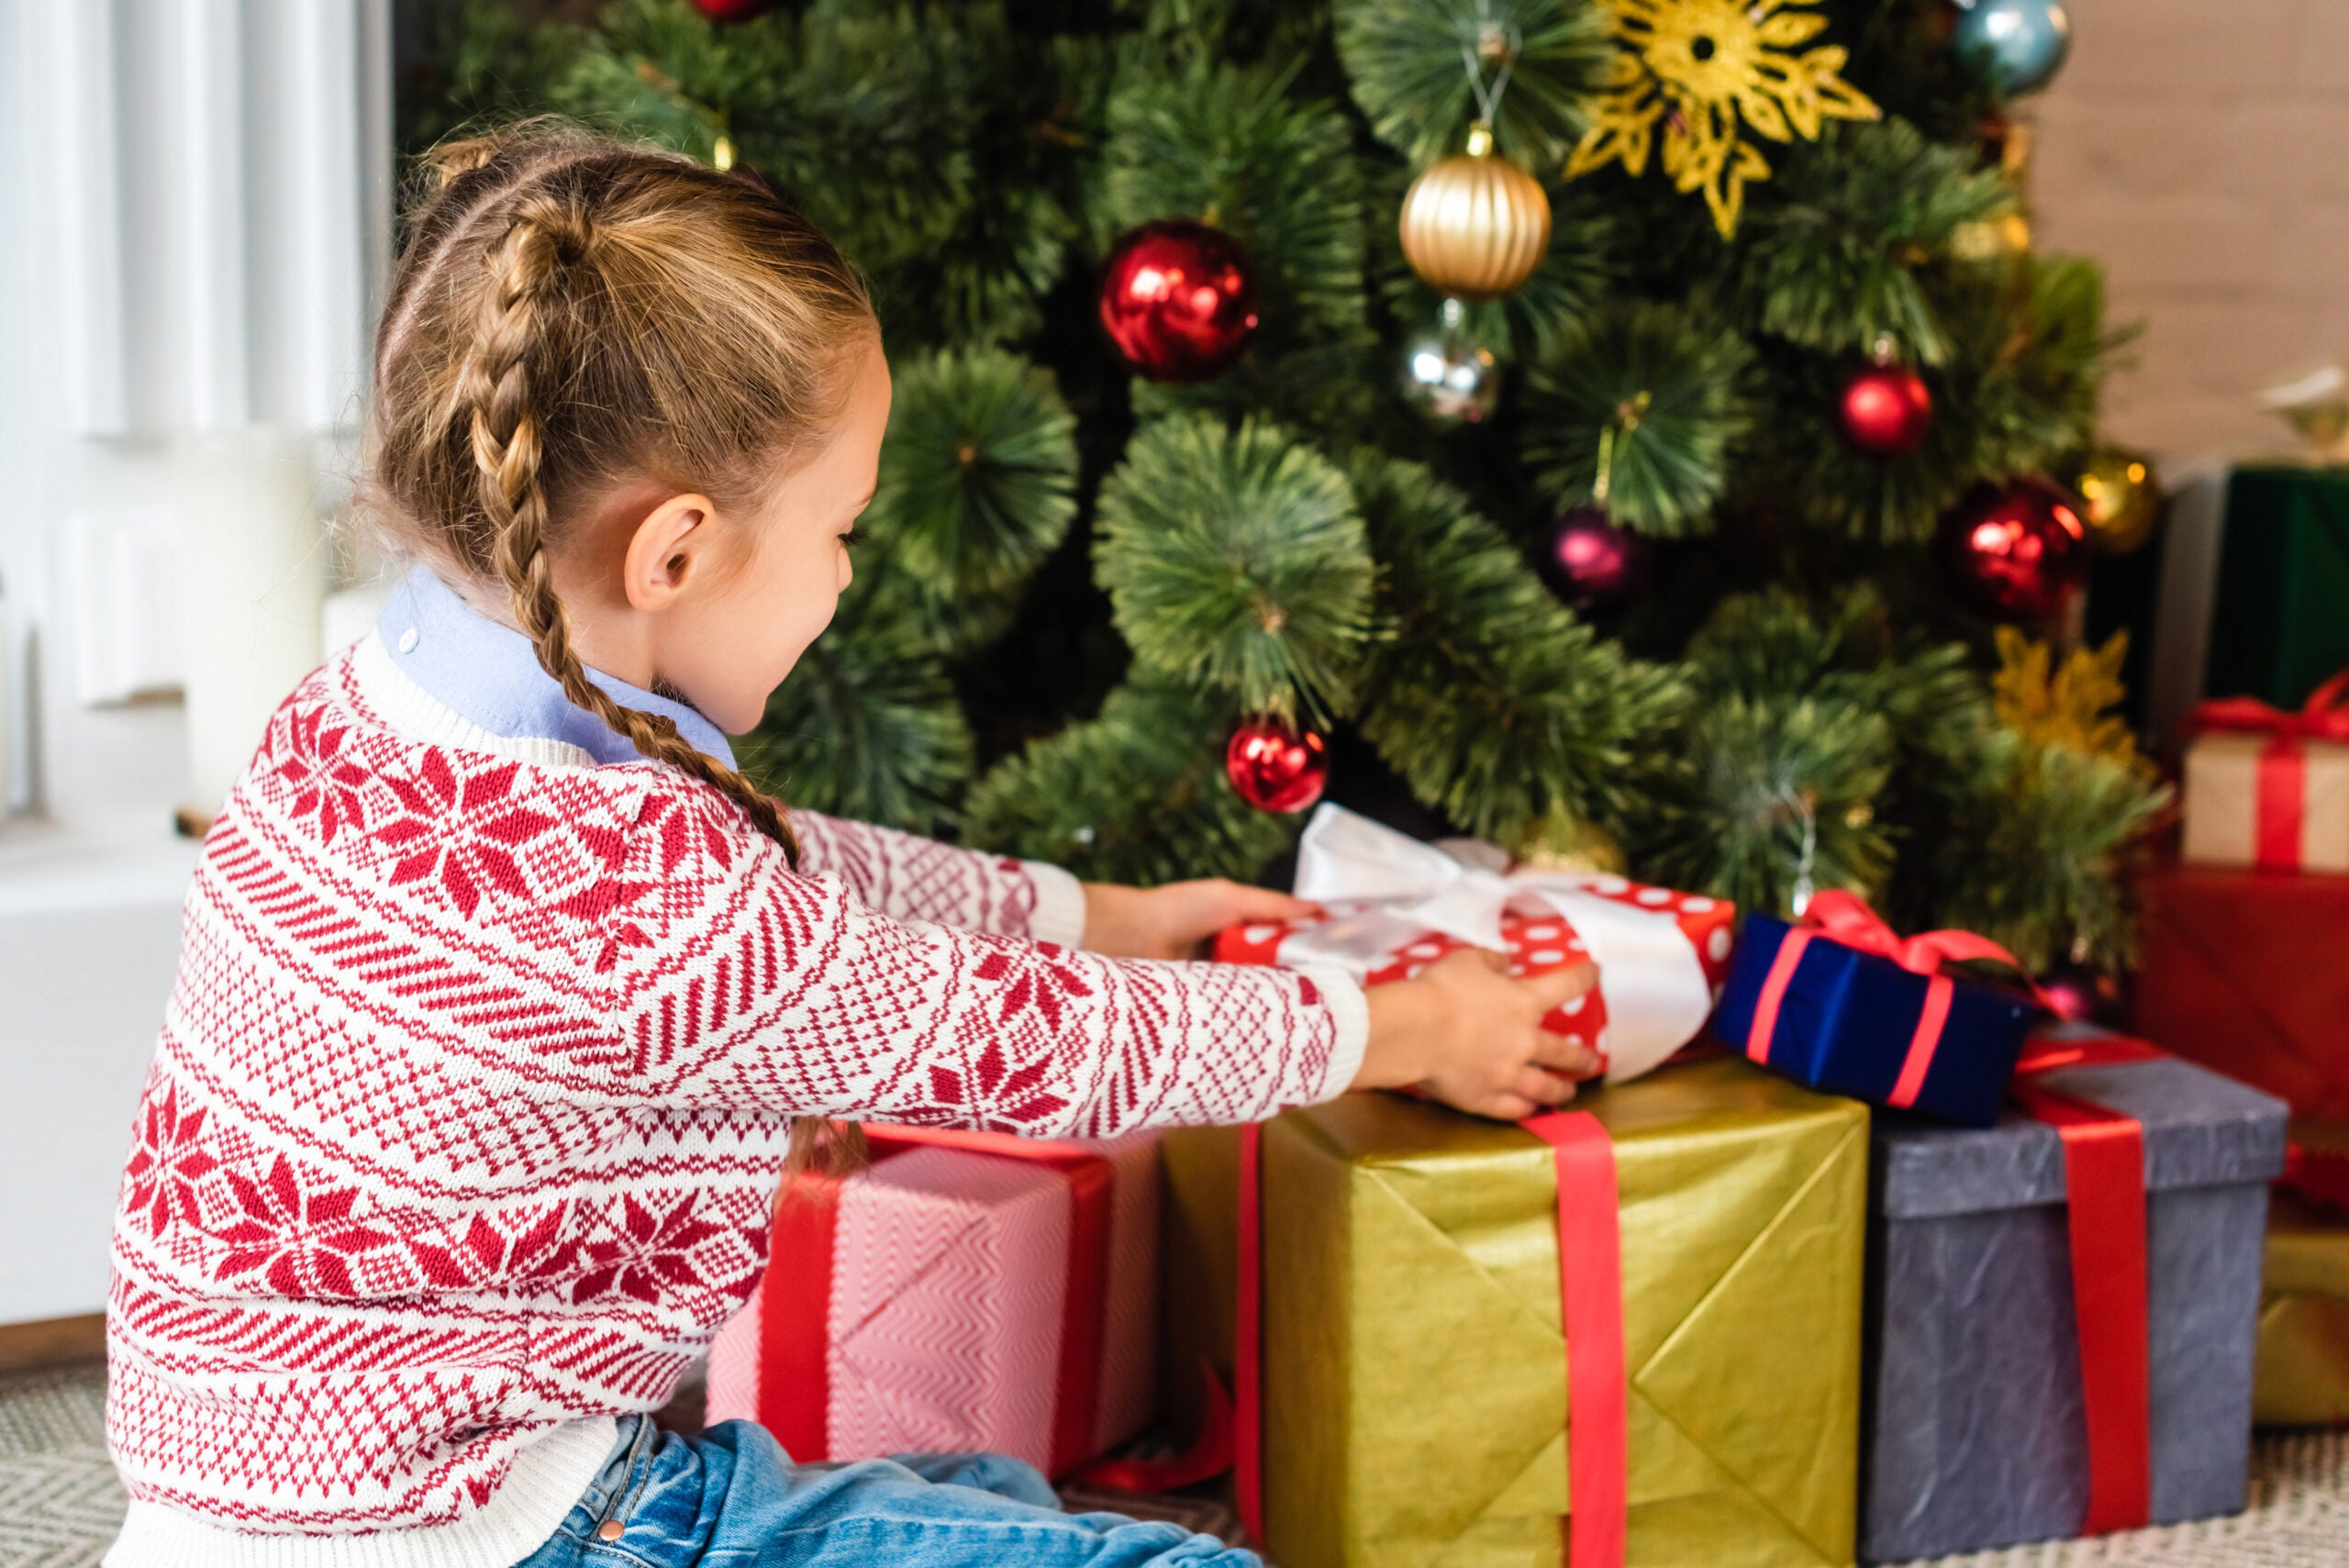 Christmas tree presents and child.